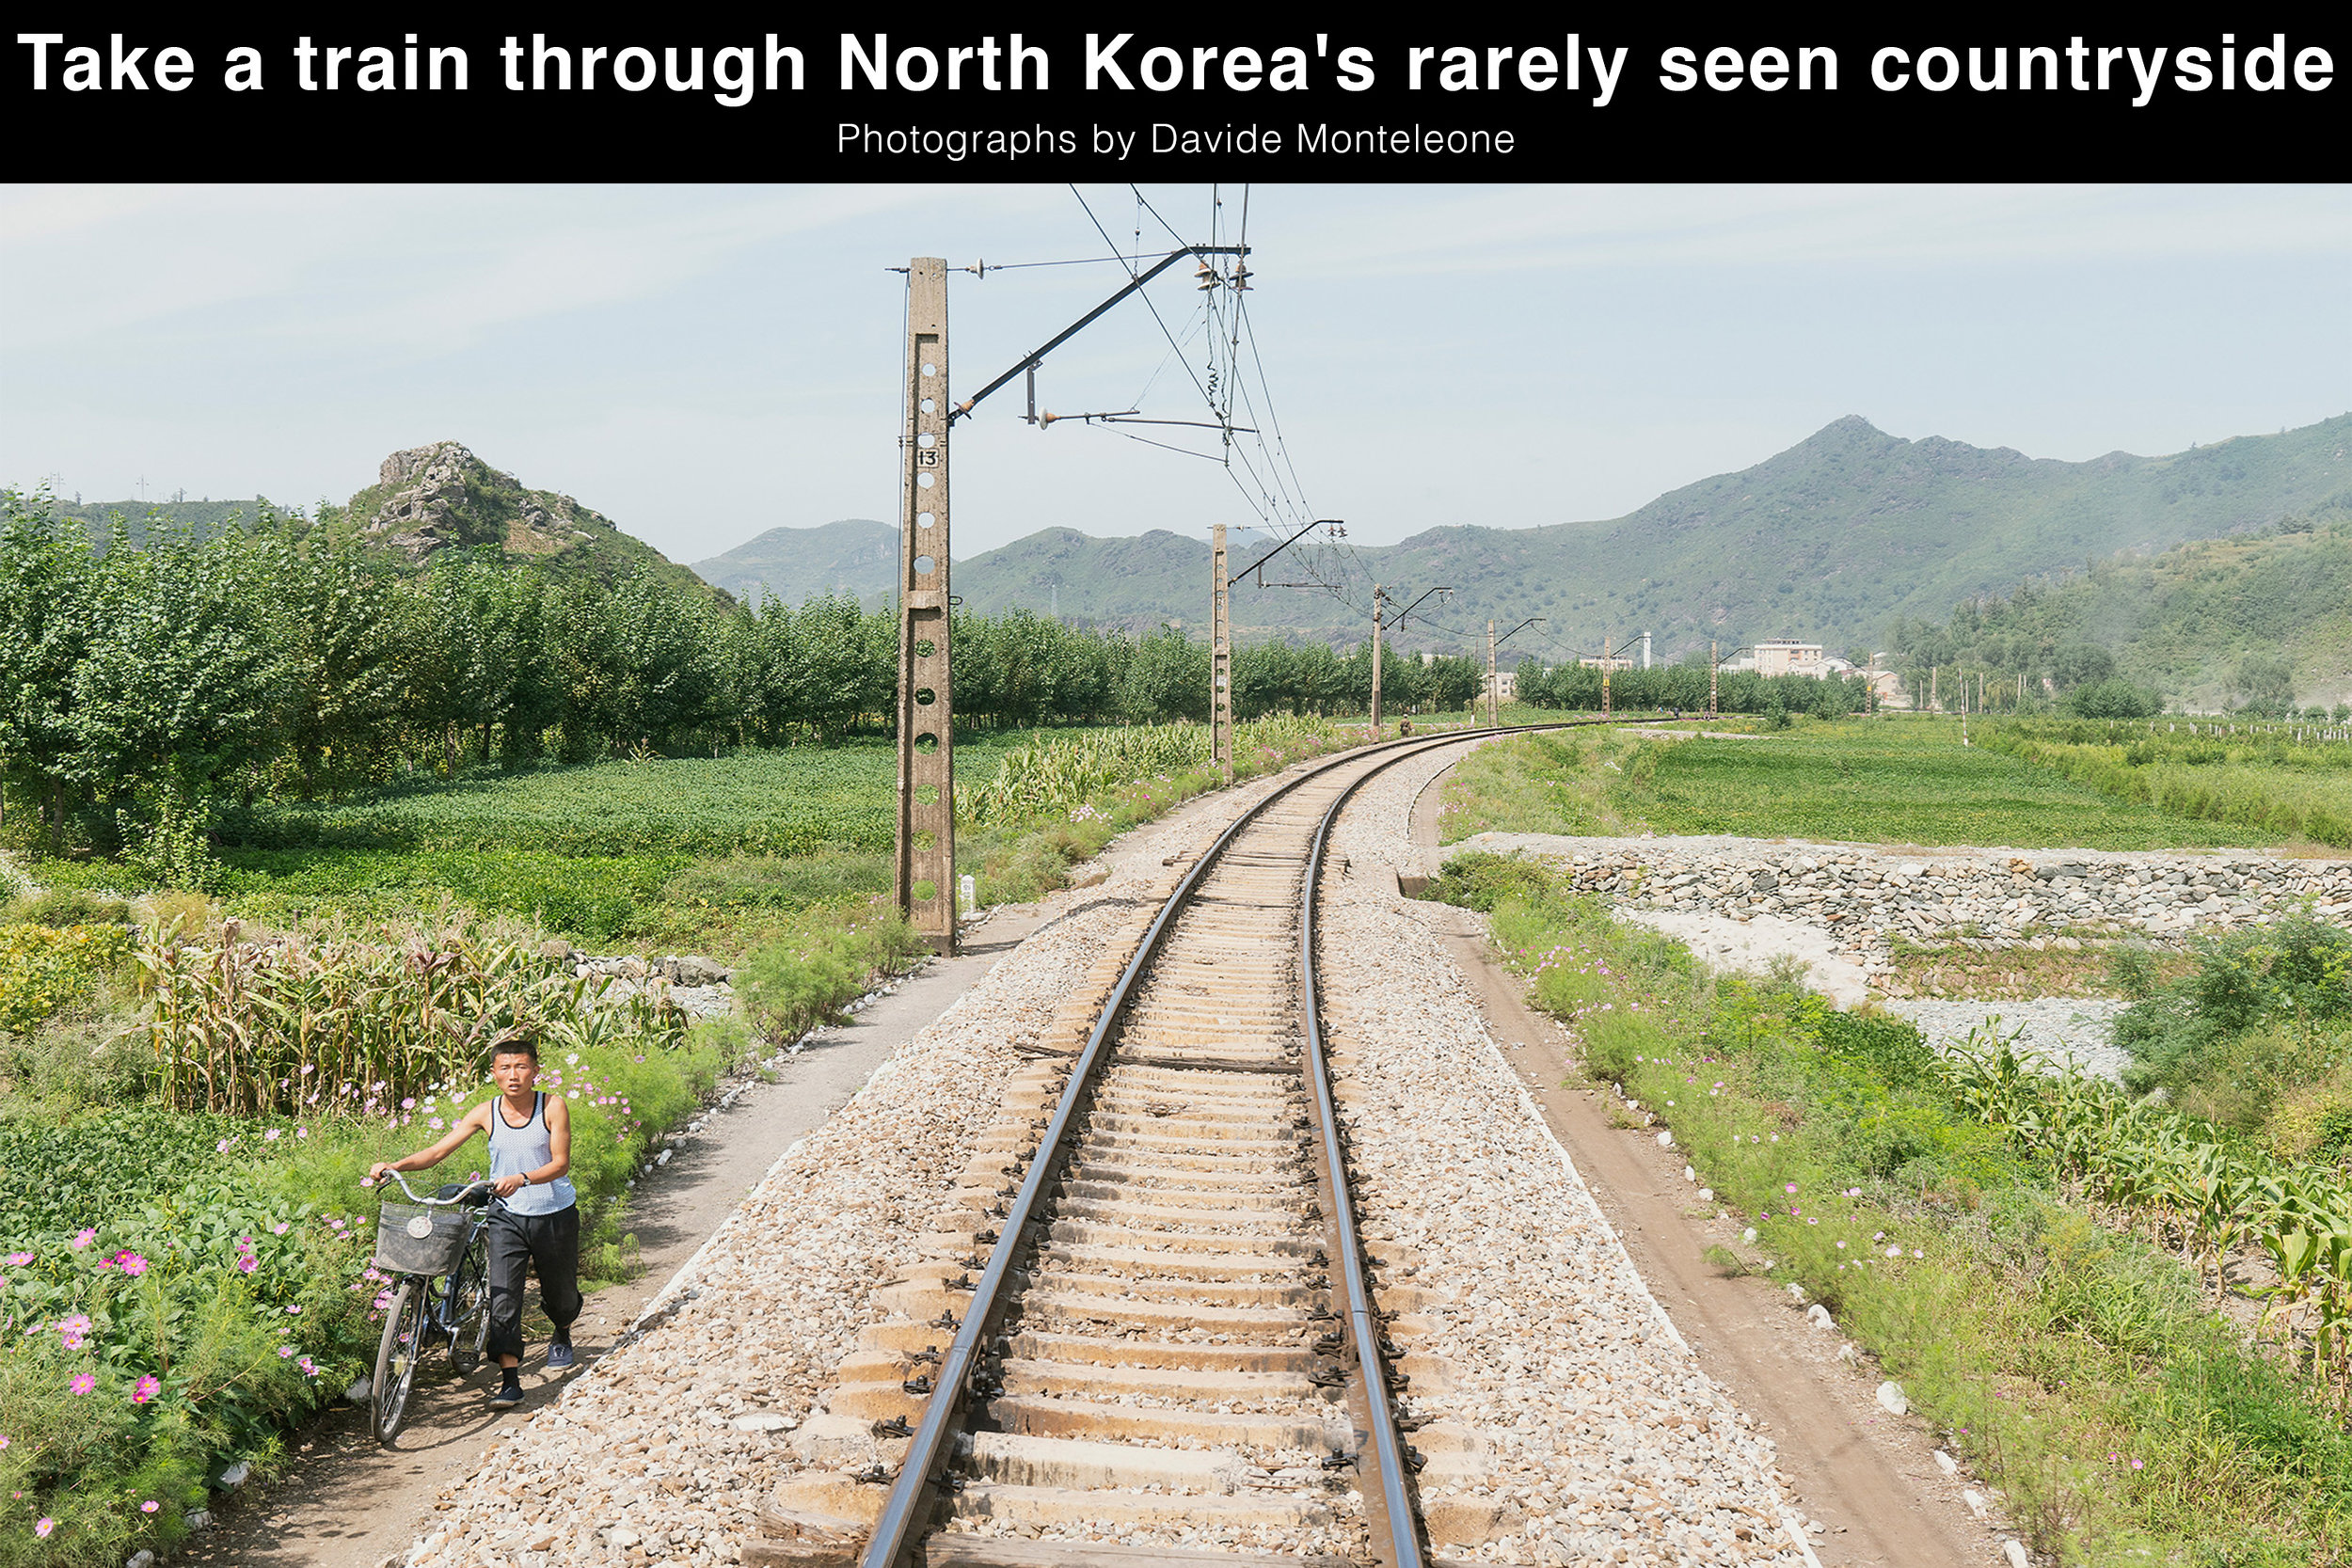 train-ride-north-korea-JH.jpg